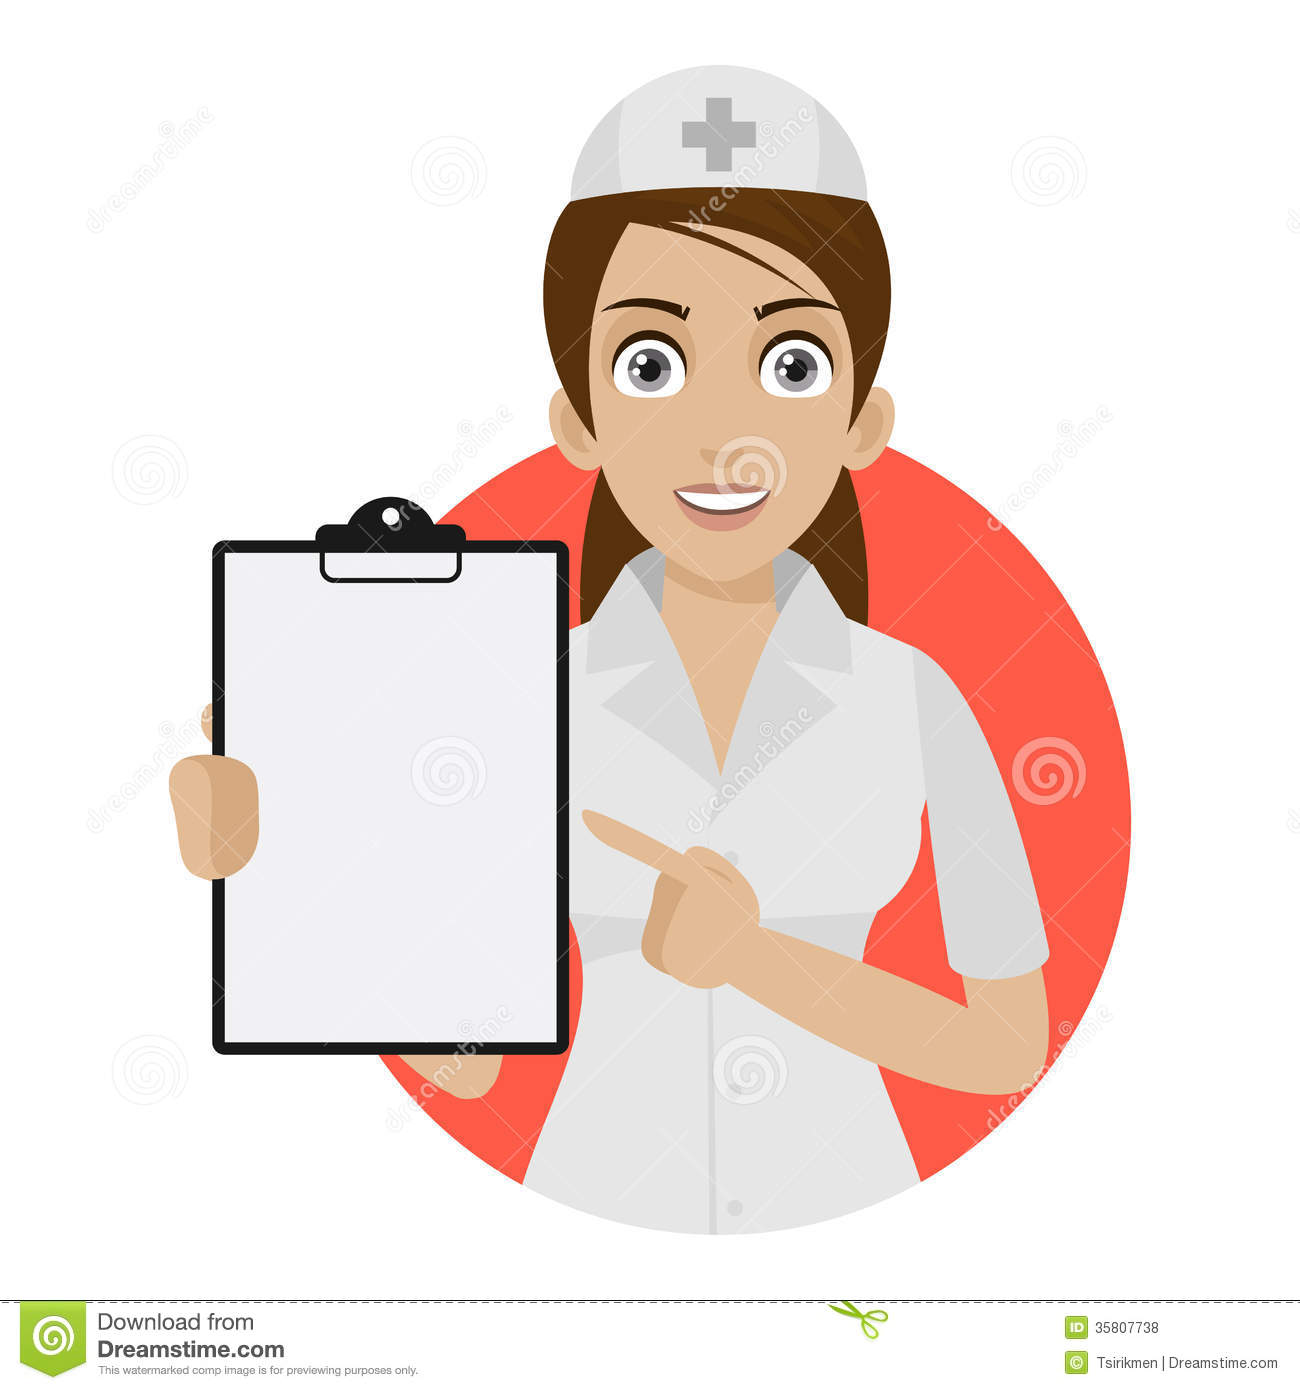 Nurse Stock Photos and Images